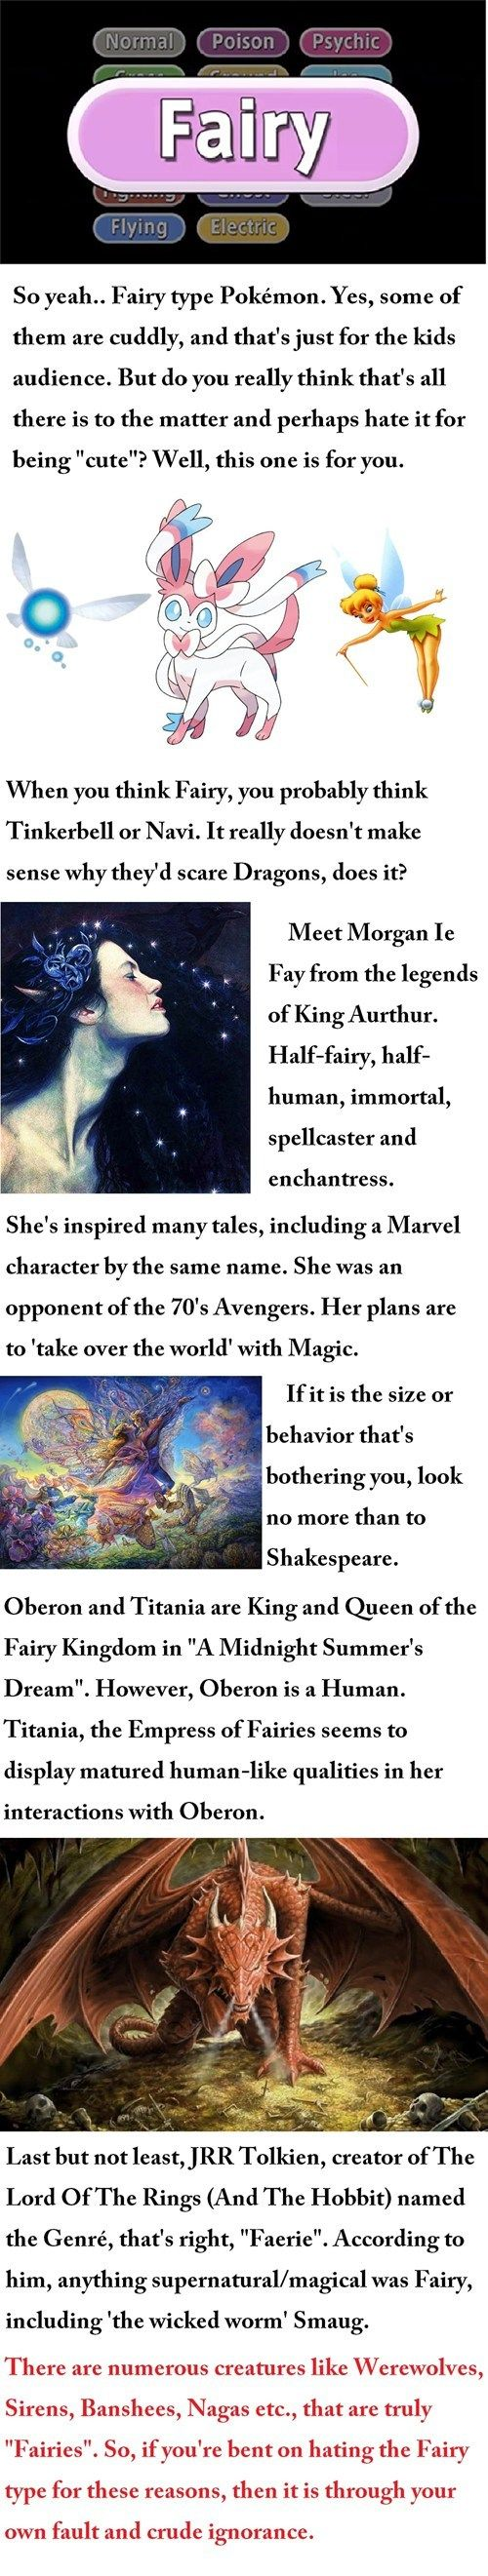 Why Are Fairies Powerful? To me, the only good Fairy Pokémon are Mawile, Sylveon, Azumarill, and Ralts—Gardevoir.